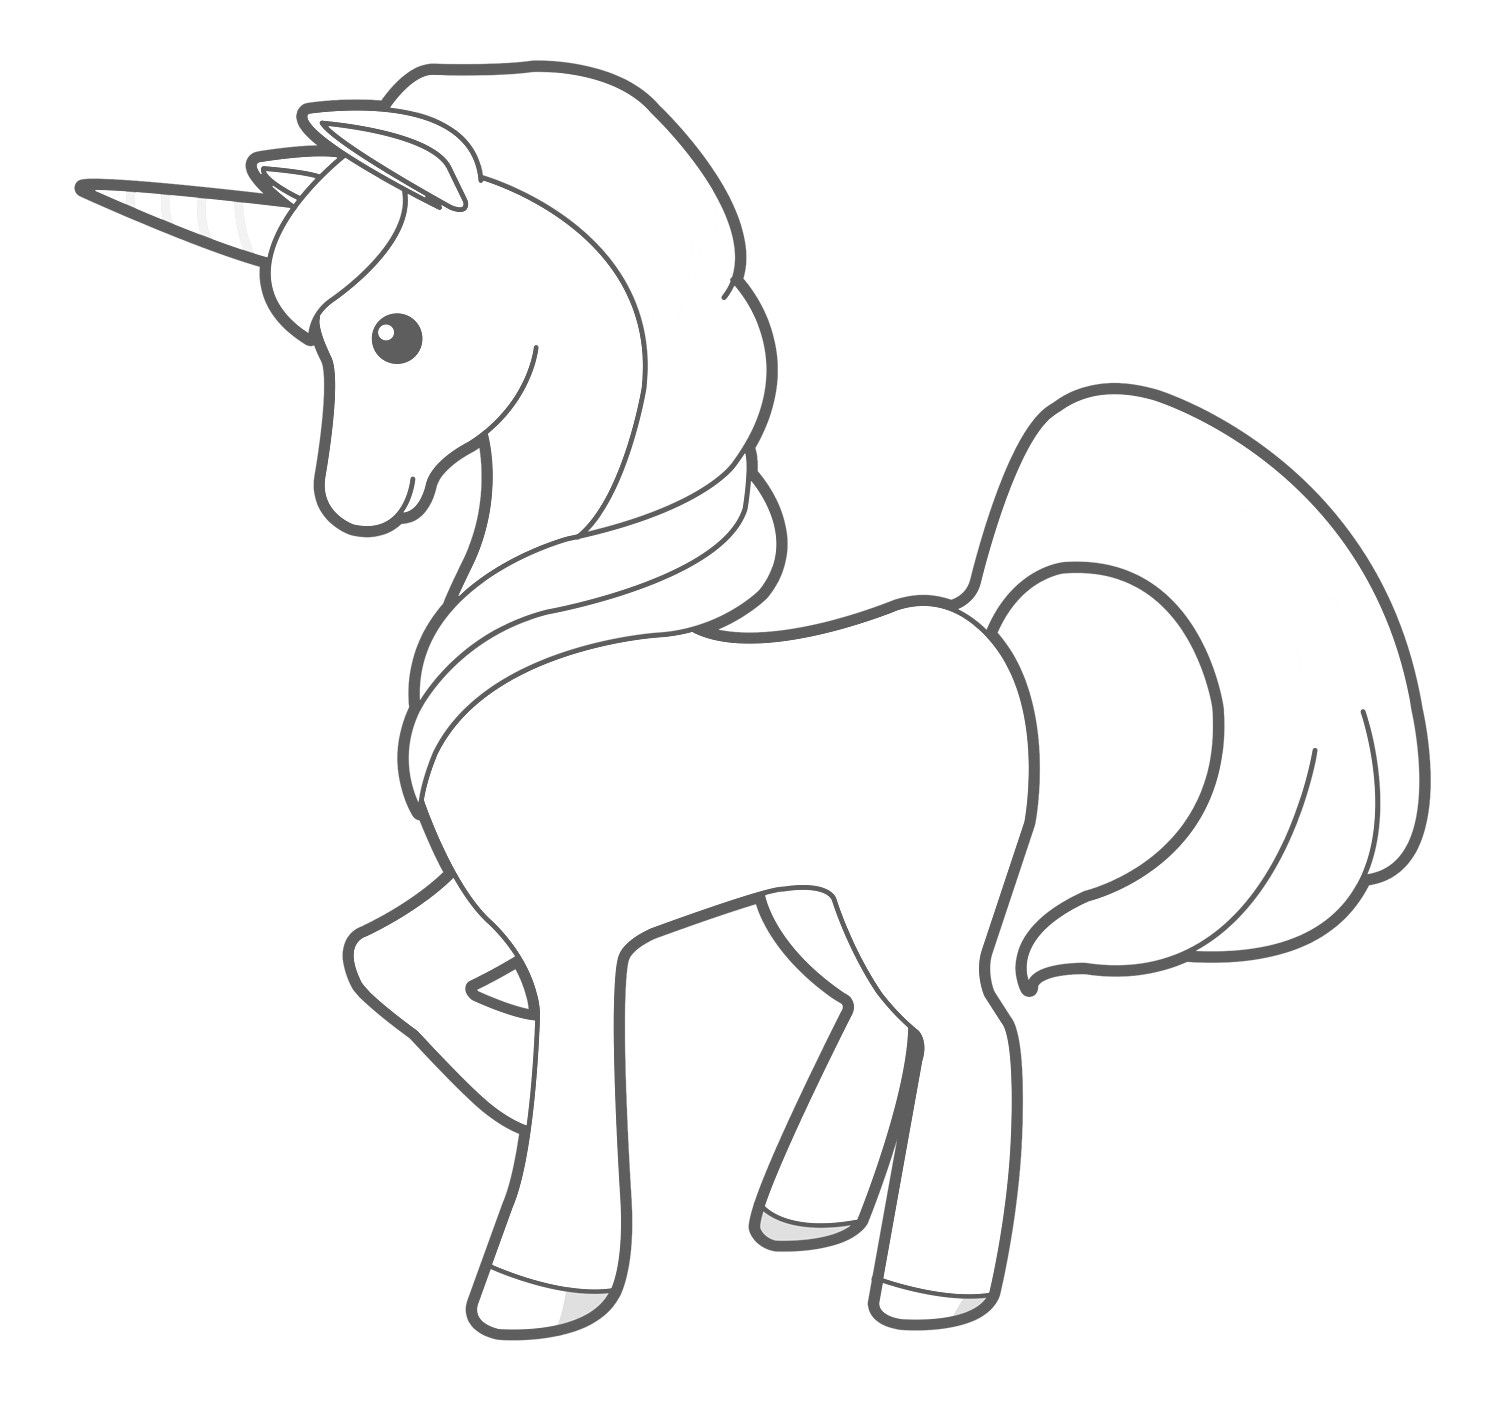 Coloring Page Base Unicorn Coloring Pages Coloring Pages